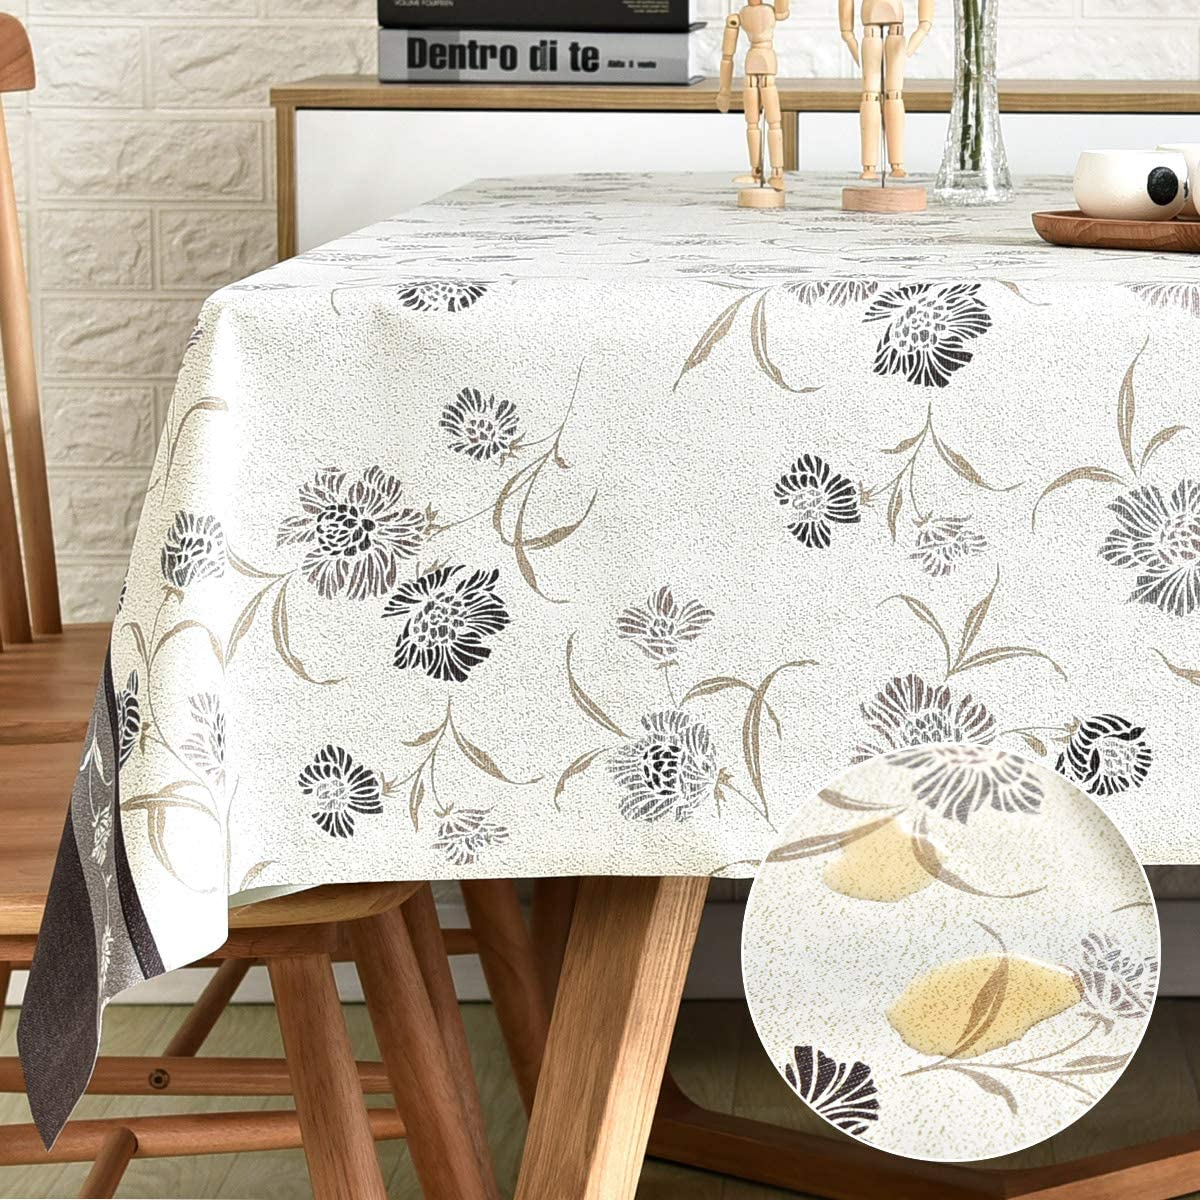 LOHASCASA Vinyl Oilcloth Tablecloth Small Rectangle Water Resistant/Oil-Proof Wipeable PVC Heavy Duty Plastic Tablecloths Weights for Outdoor Picnic - Floral Grey 54 x 72 Inch